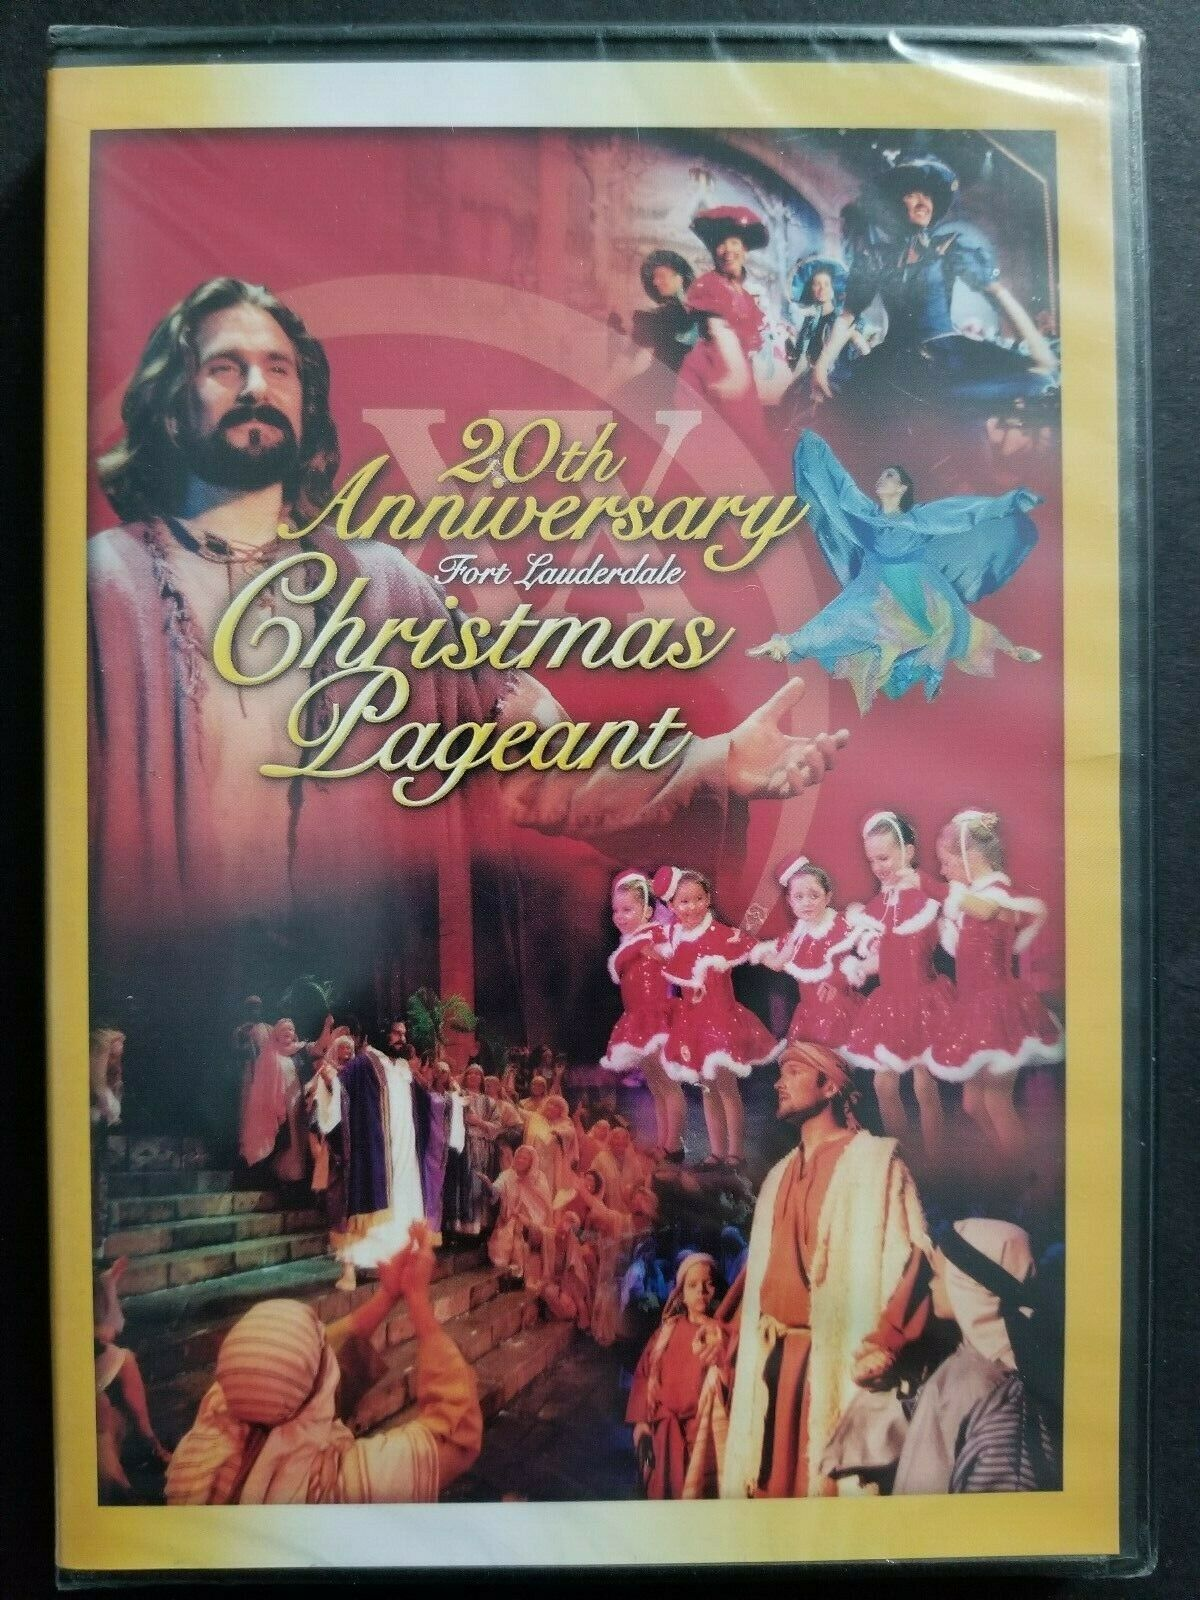 Fort Lauderdale Christmas Pageant 2020 Dvd 20th Anniversary Fort Lauderdale Christmas Pageant on DVD Very